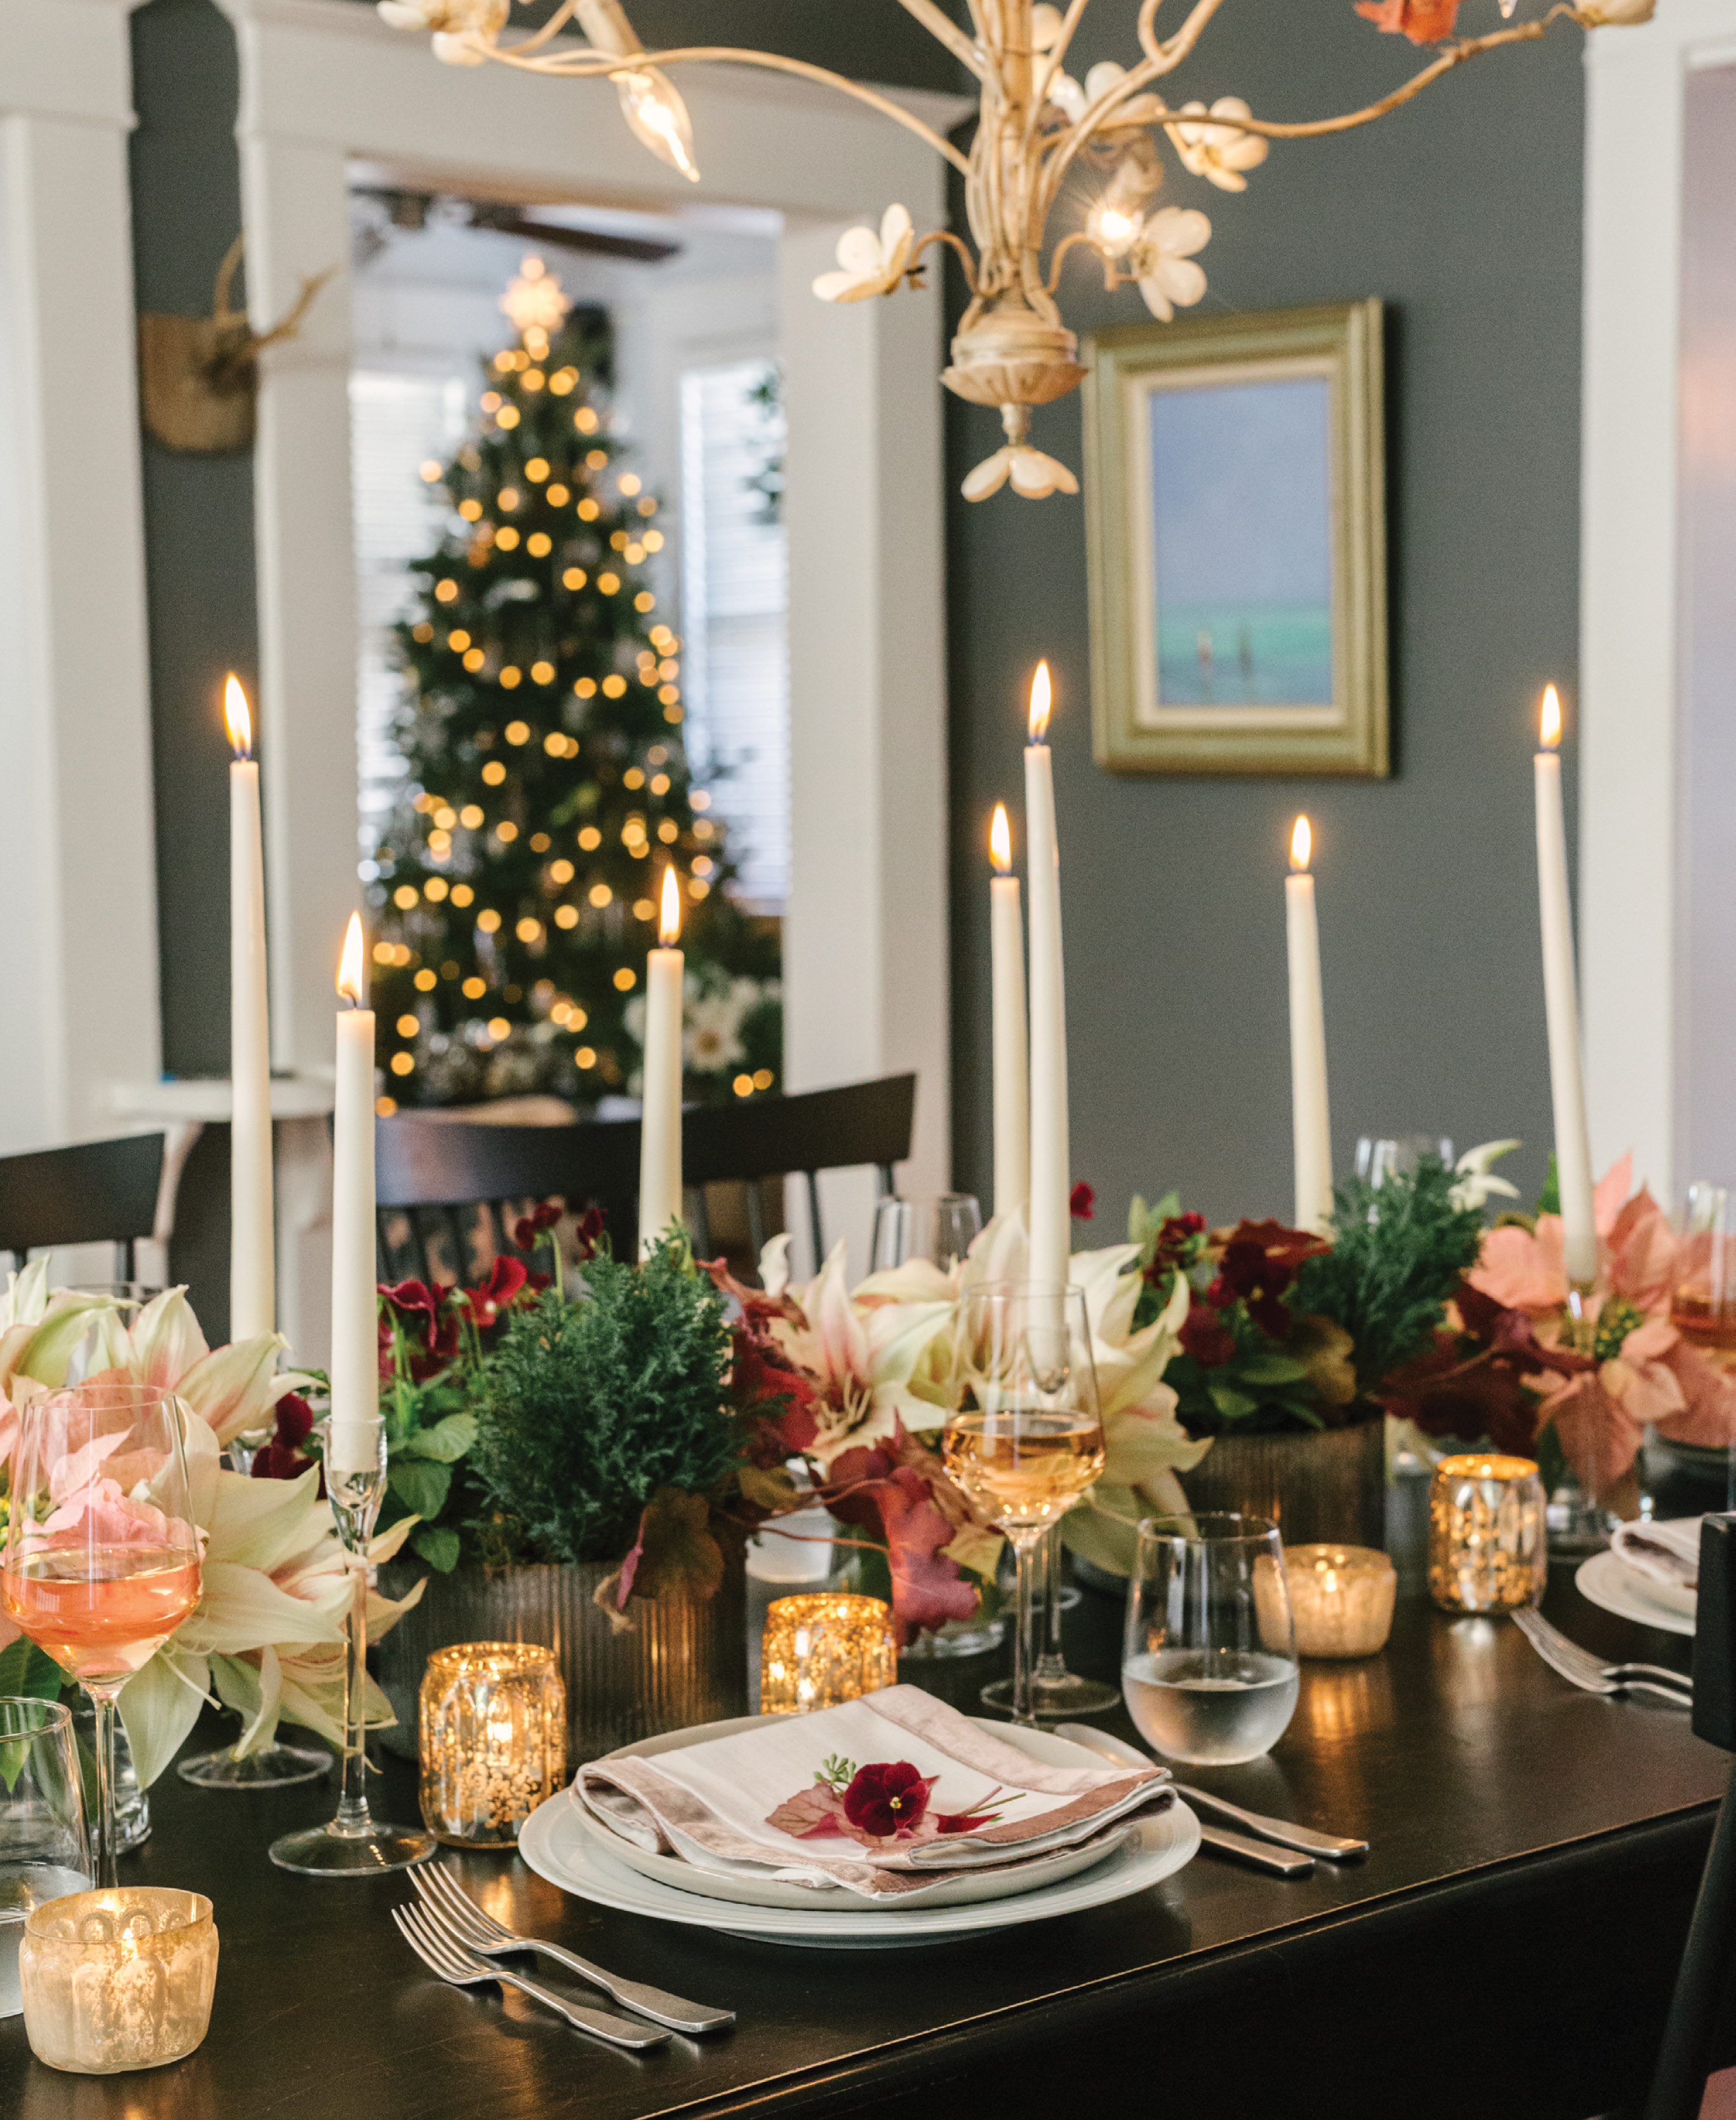 Tabletop Magic: The holidays also call for planning special meals and decking out dining spaces. Heather recommends working fresh florals and pops of color into your tablescape.